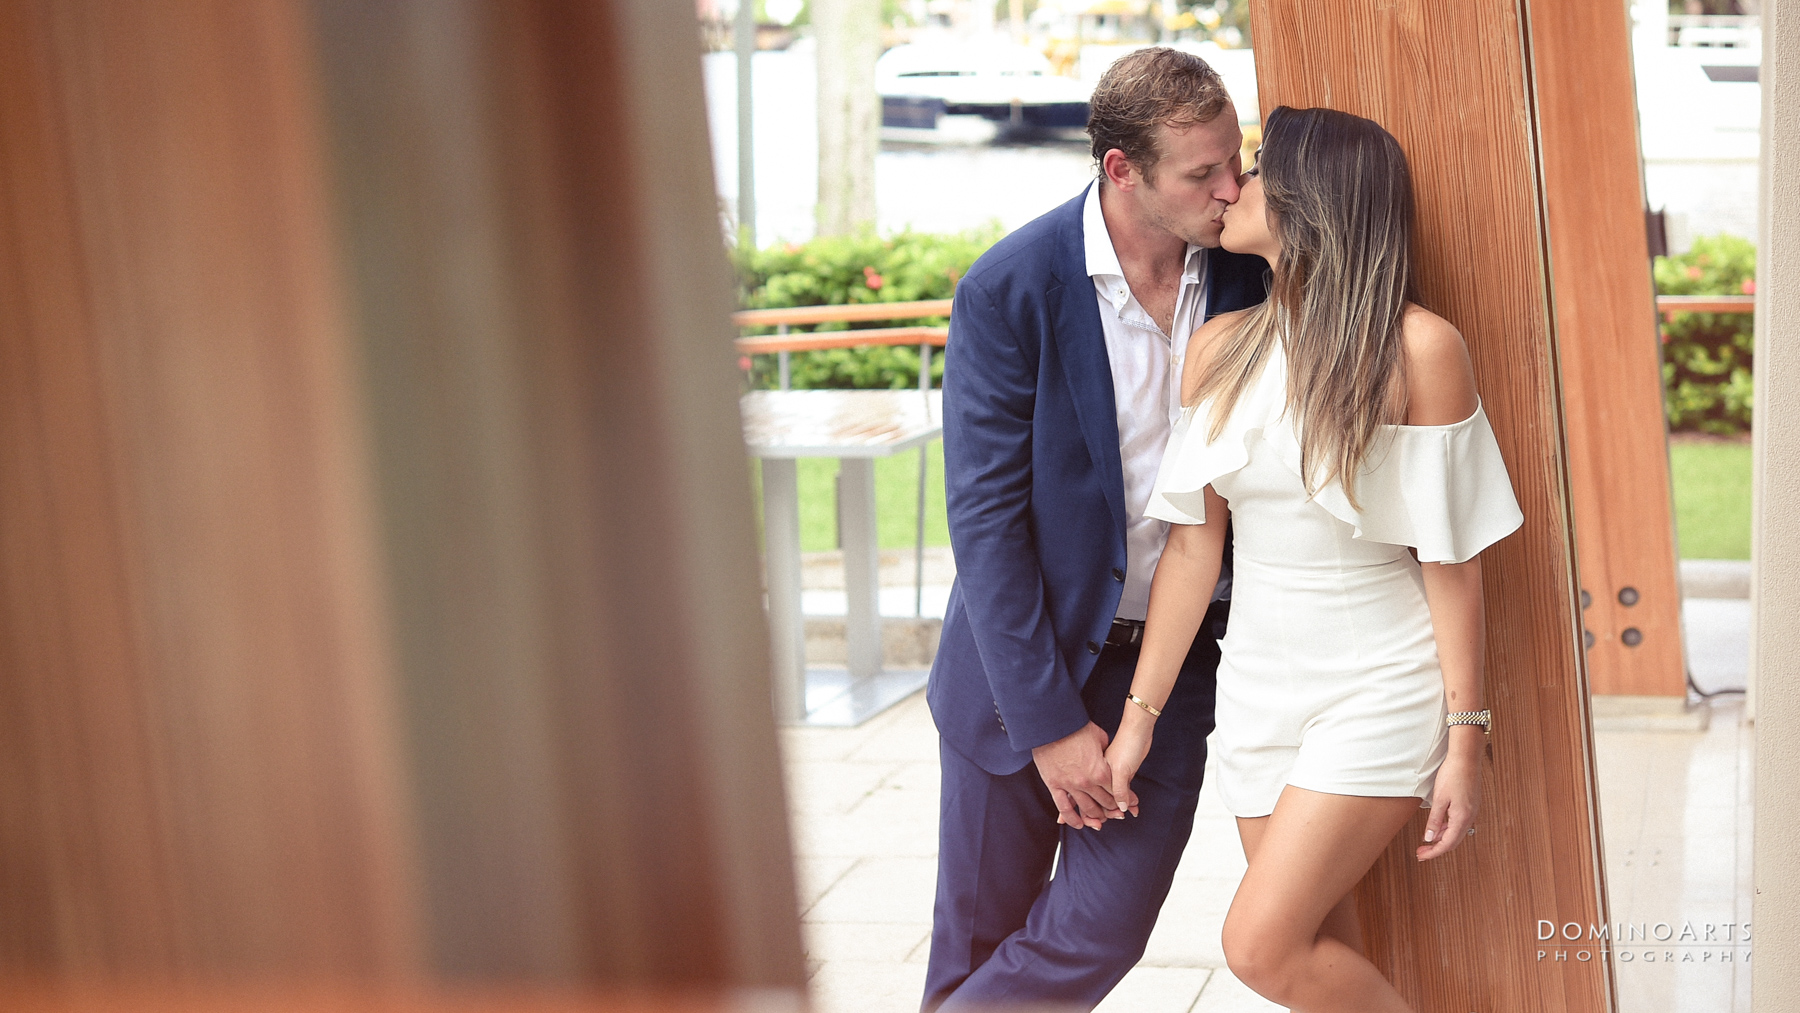 Cute kissing picture at Engagement photography at Riverfront, Fort Lauderdale